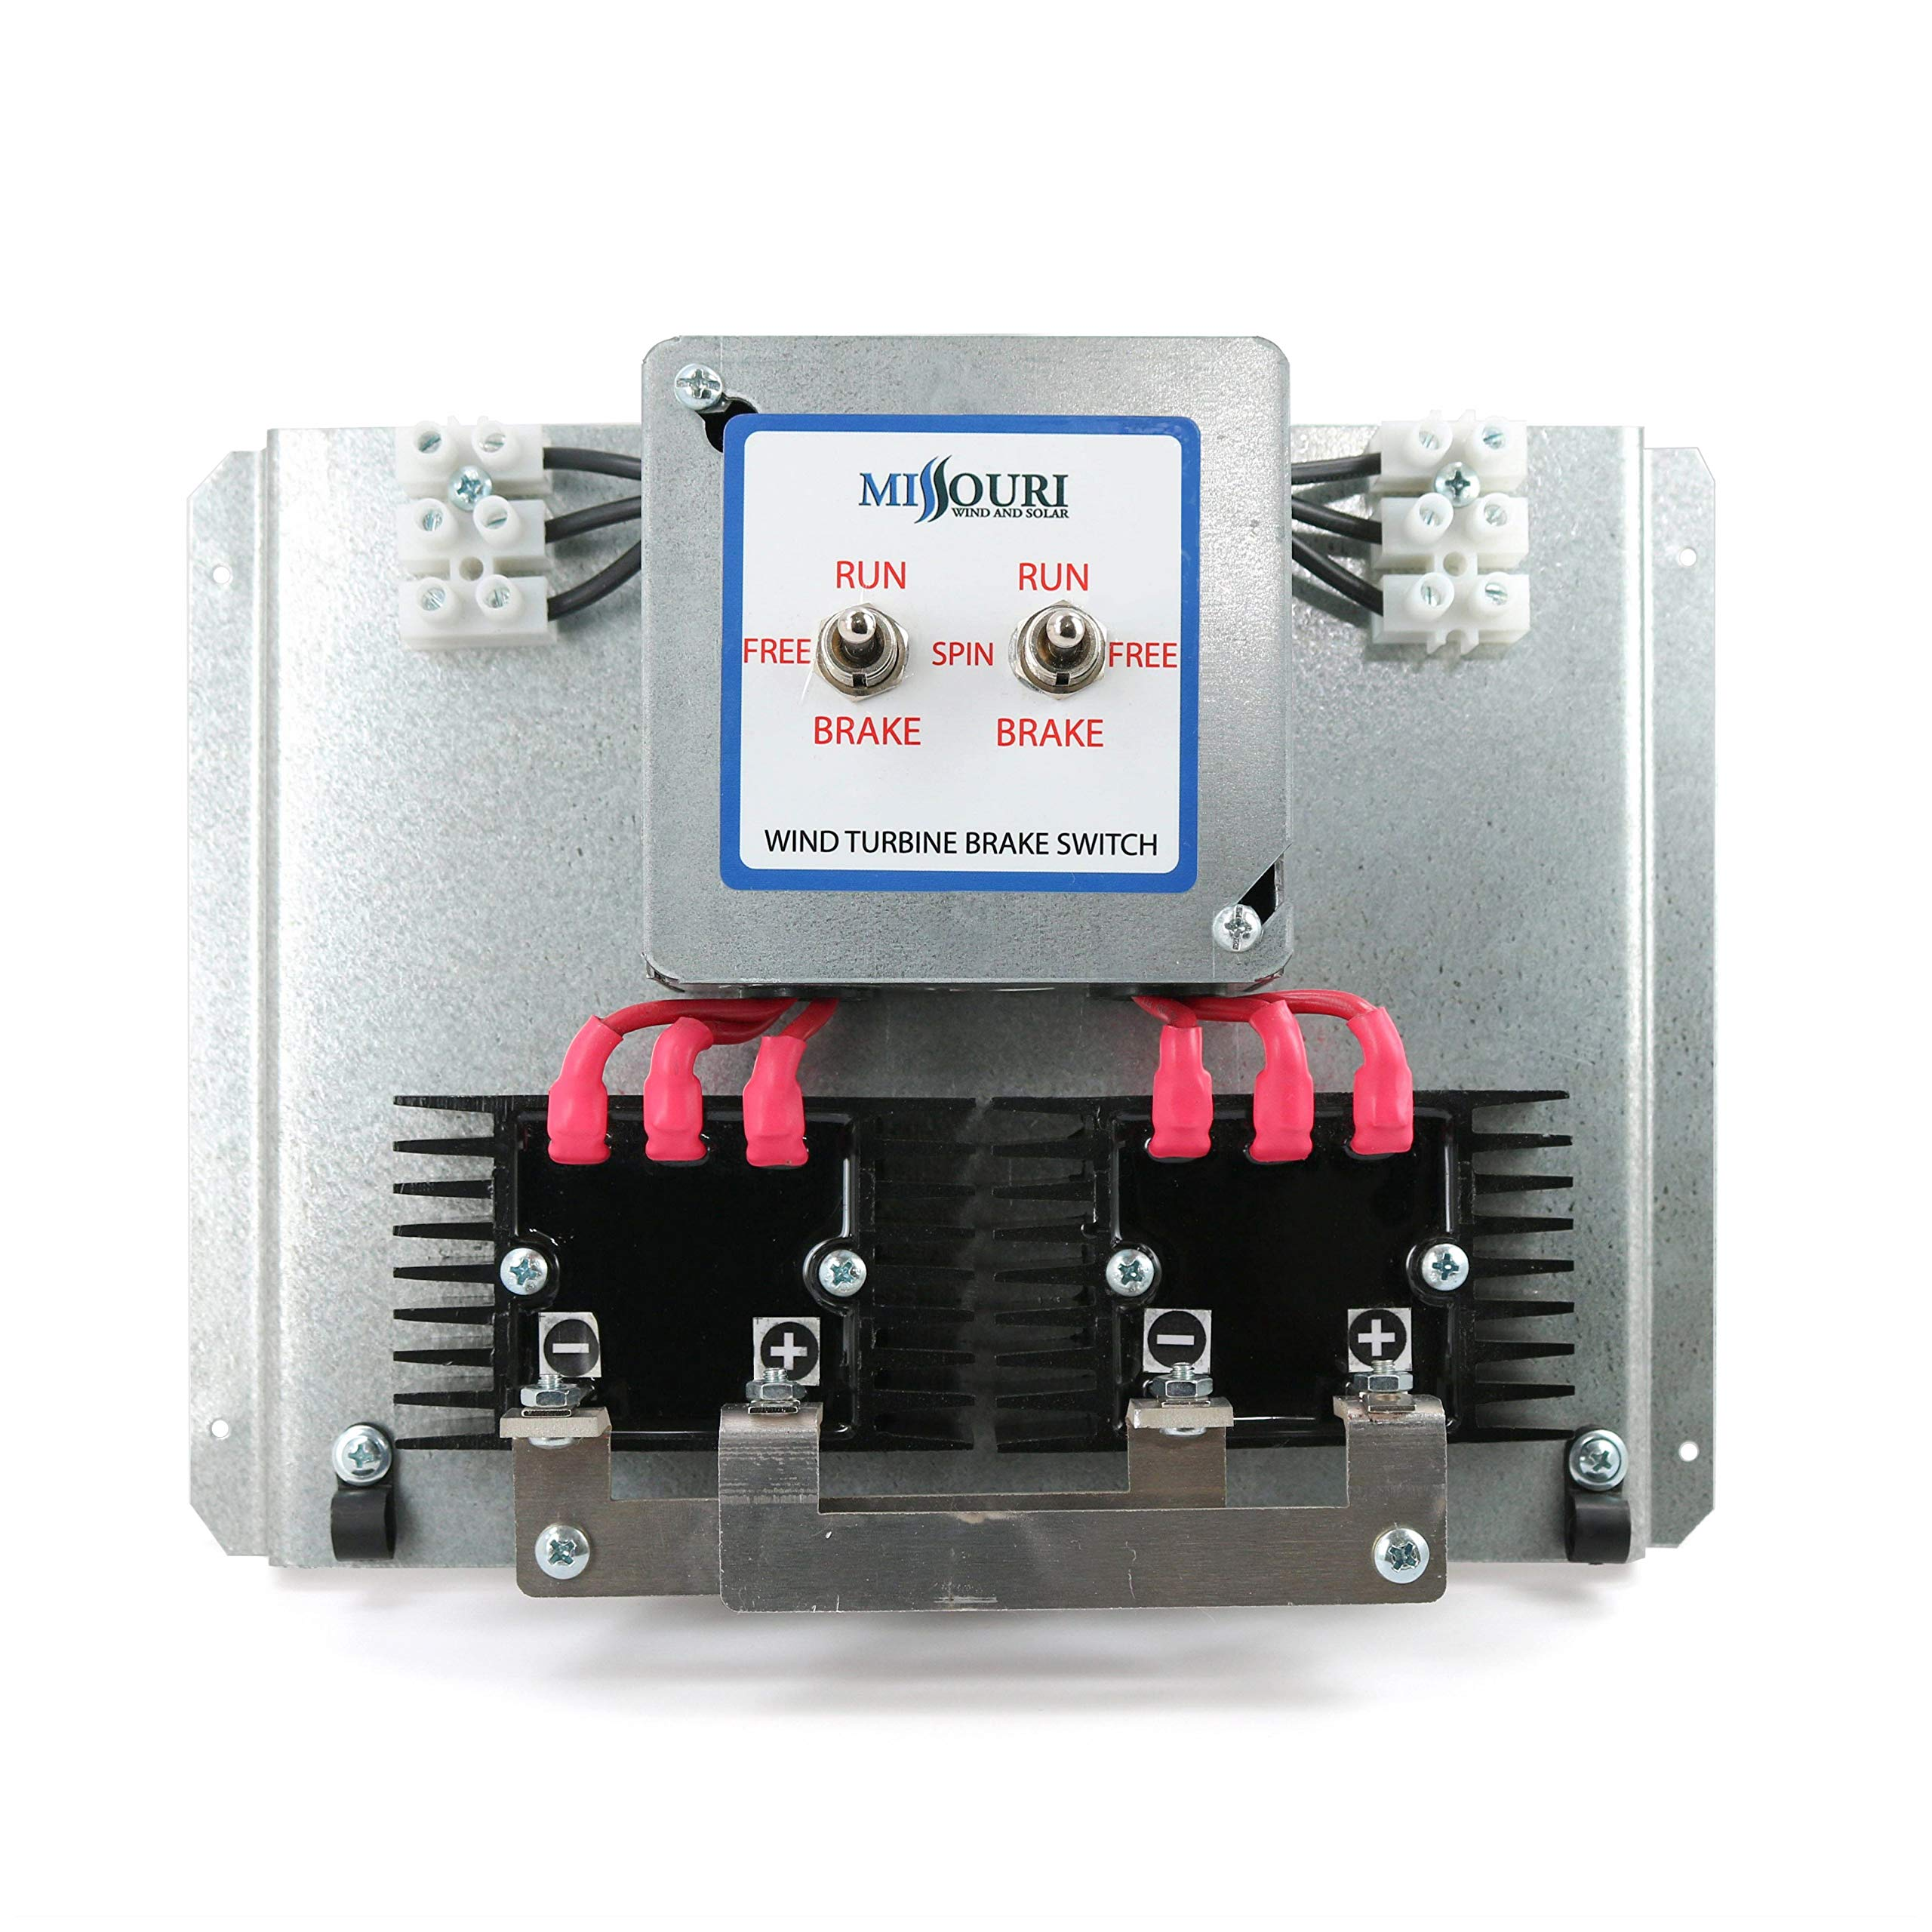 Dual 3 Phase Brake Switch for 2000 Watt Wind Turbines by Missouri Wind and Solar